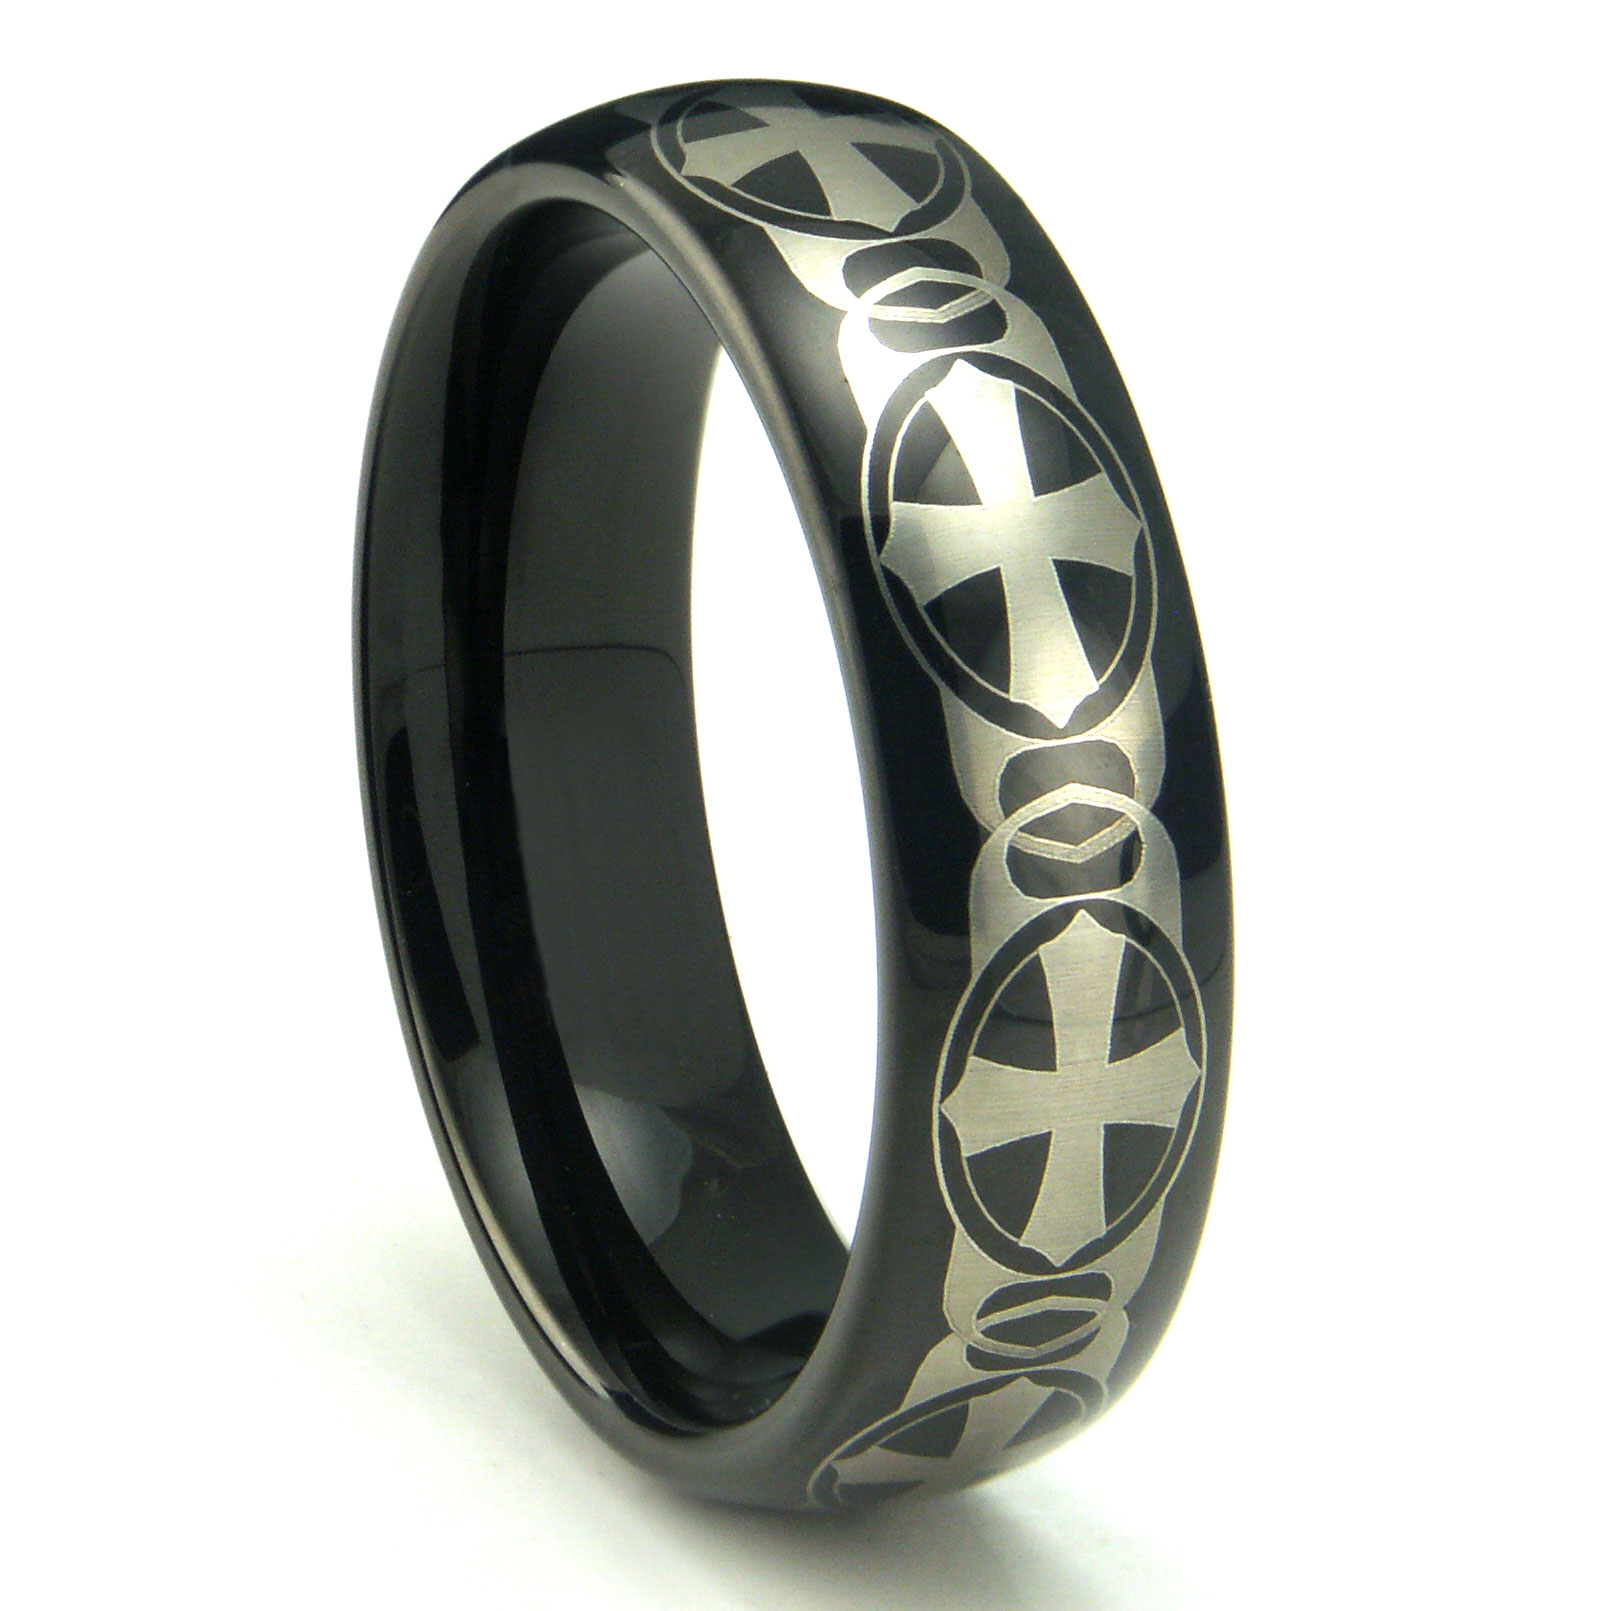 Mens Tungsten Carbide Rings mens ceramic wedding bands Black Tungsten Carbide Laser Engraved Celtic Cross Dome Wedding Band Ring